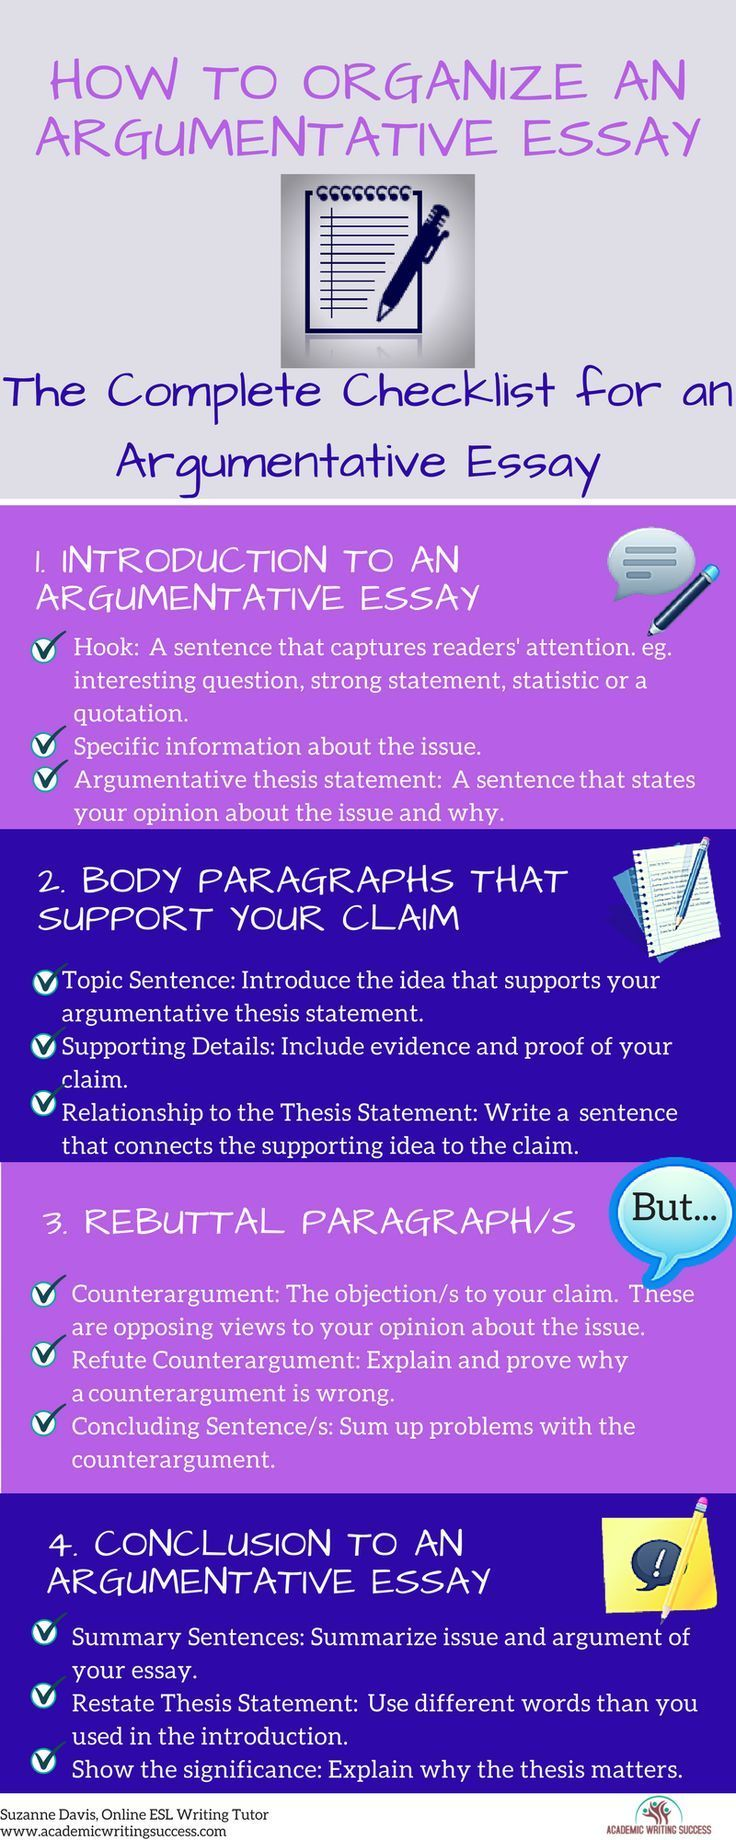 The Ultimate Guide On How To Organize A Bold Argumentative Essay Academic Writing Success Essay Writing Skills Argumentative Essay Academic Writing